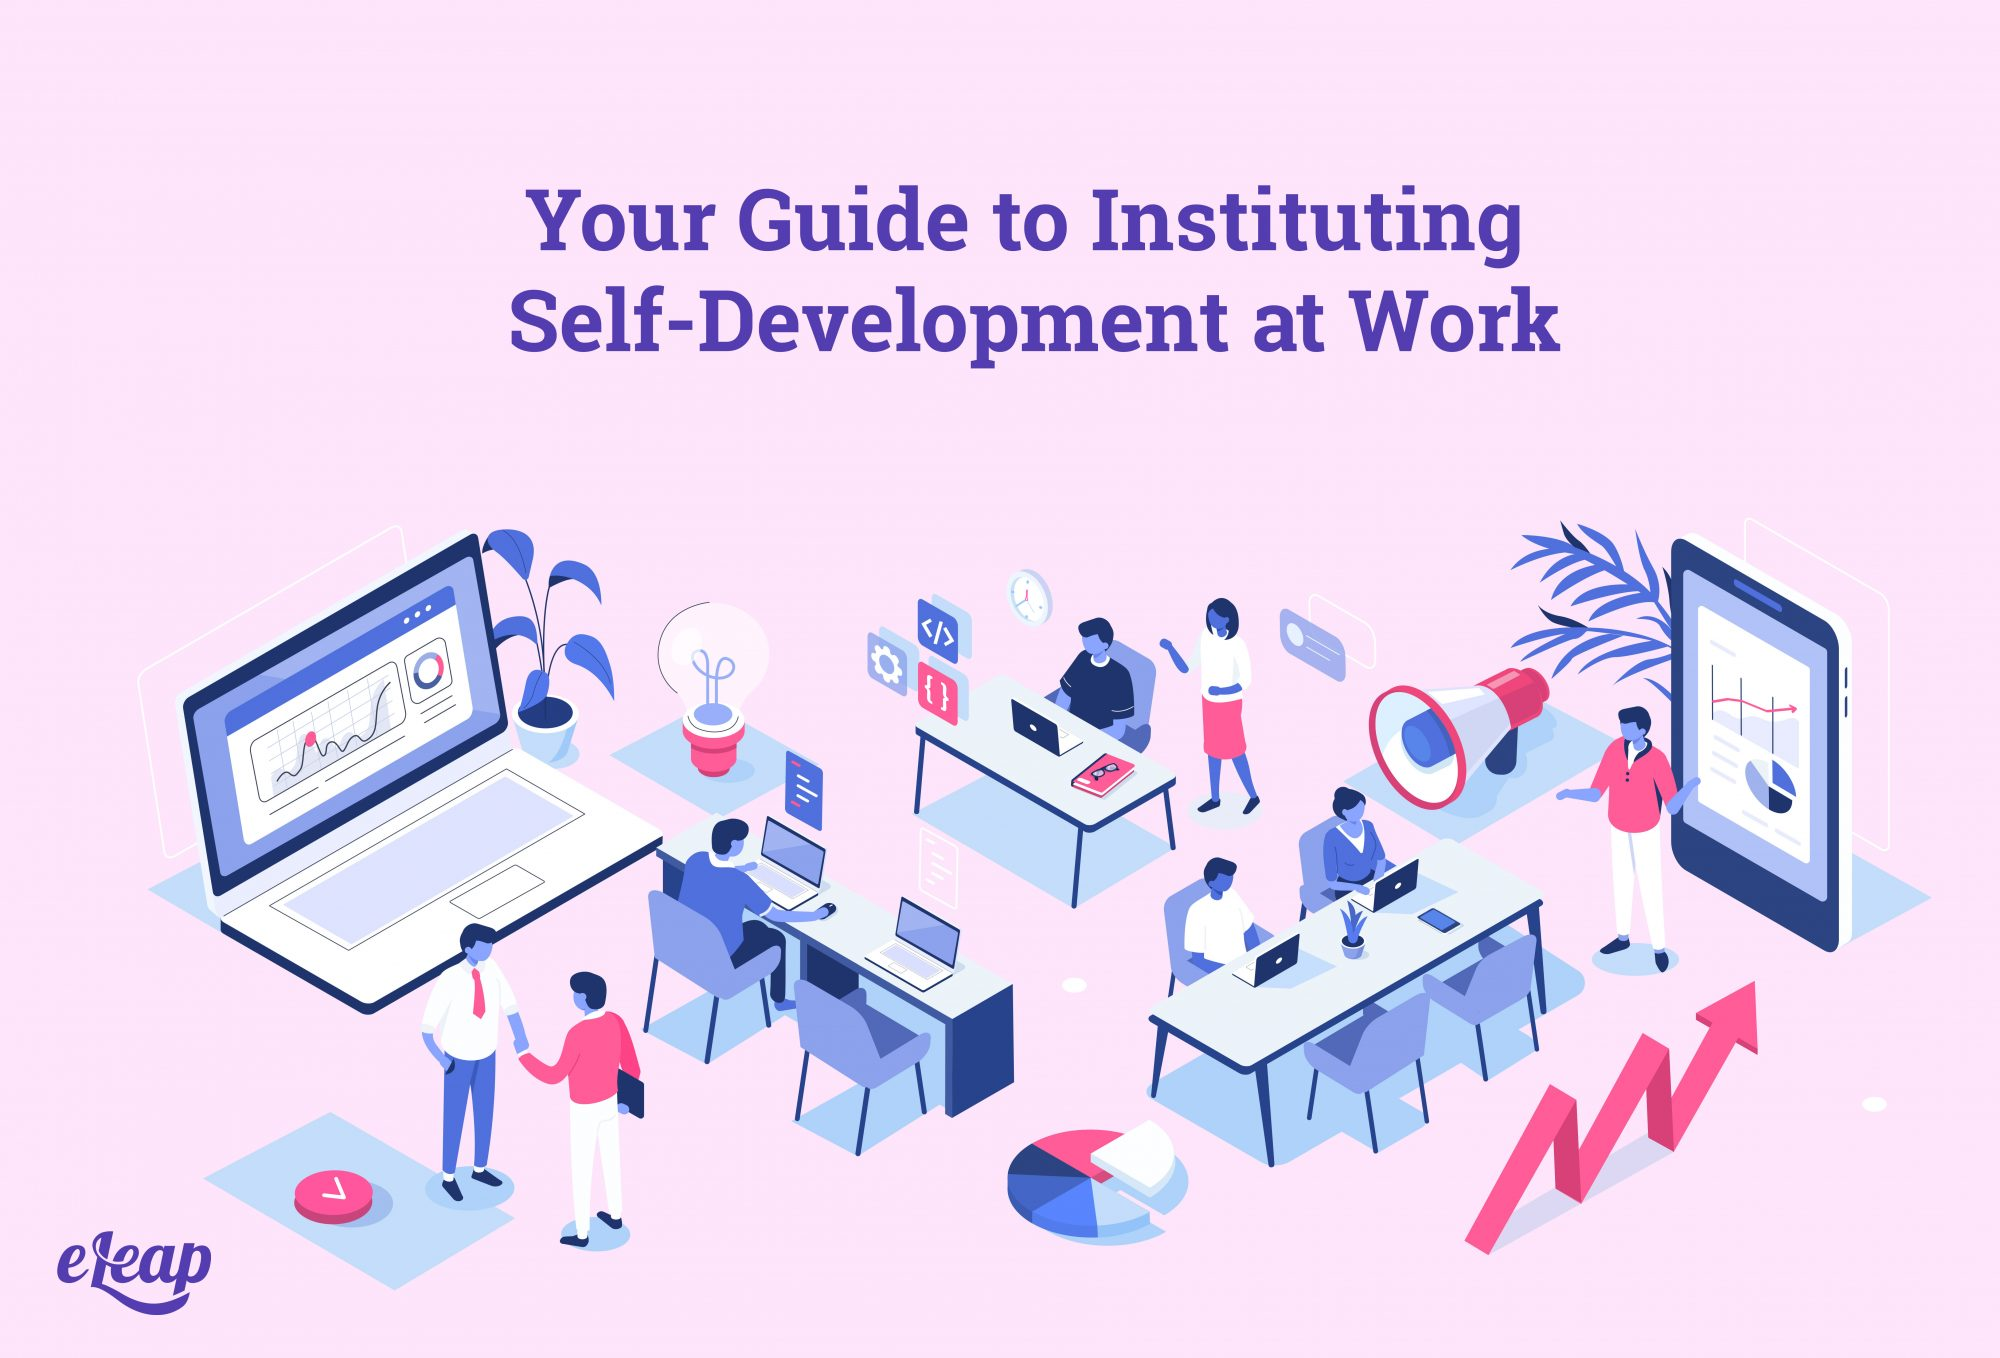 Your Guide to Instituting Self-Development at Work